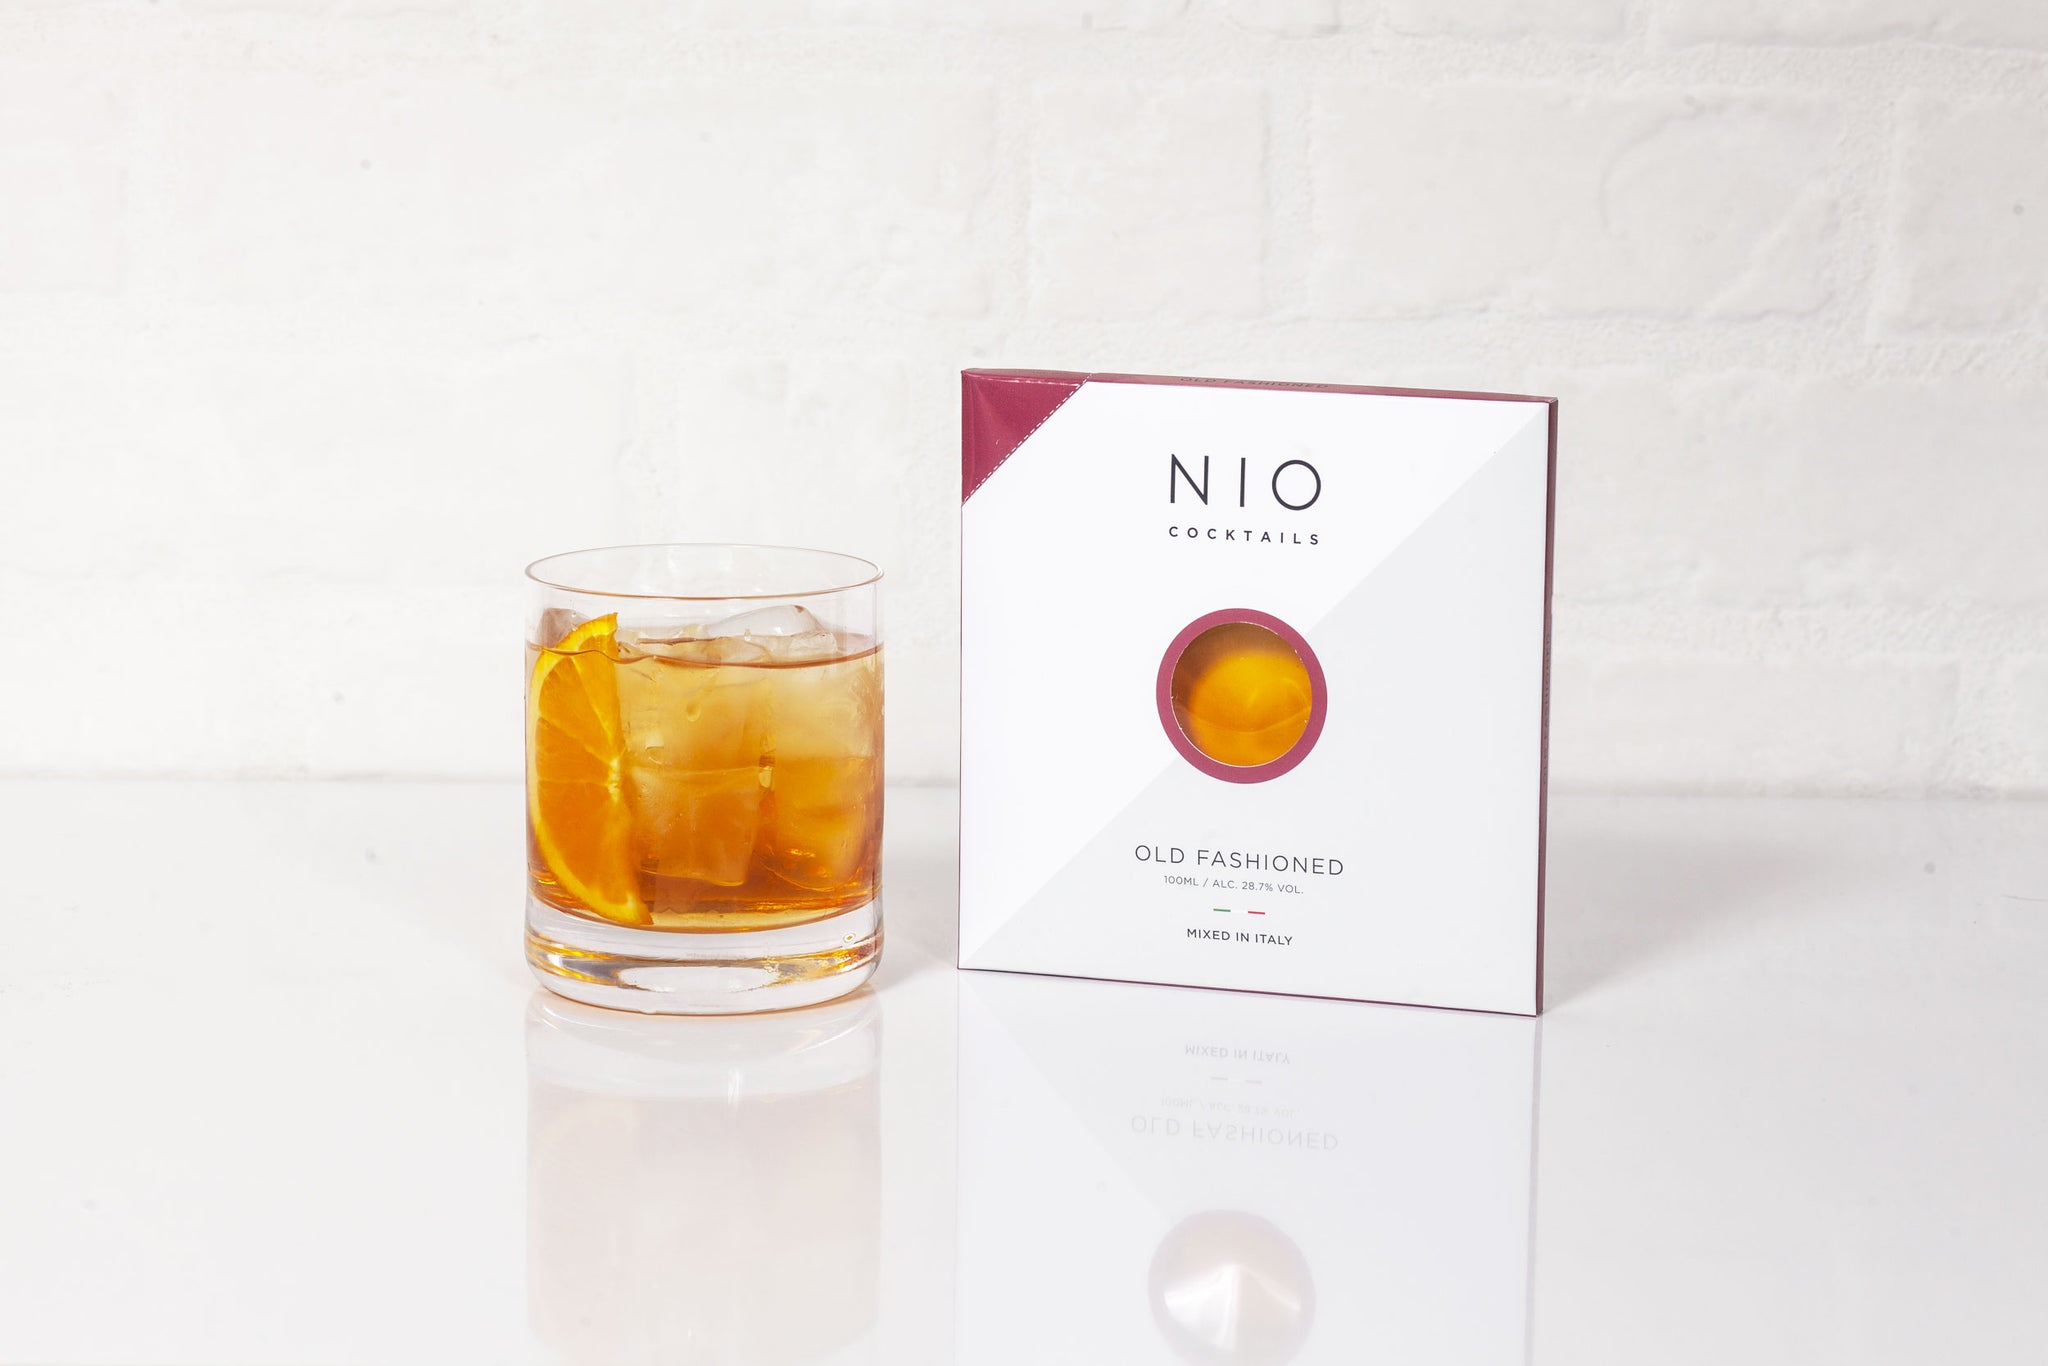 Old Fashioned Cocktail: NIO ti porta a casa un vero mito della mixology.